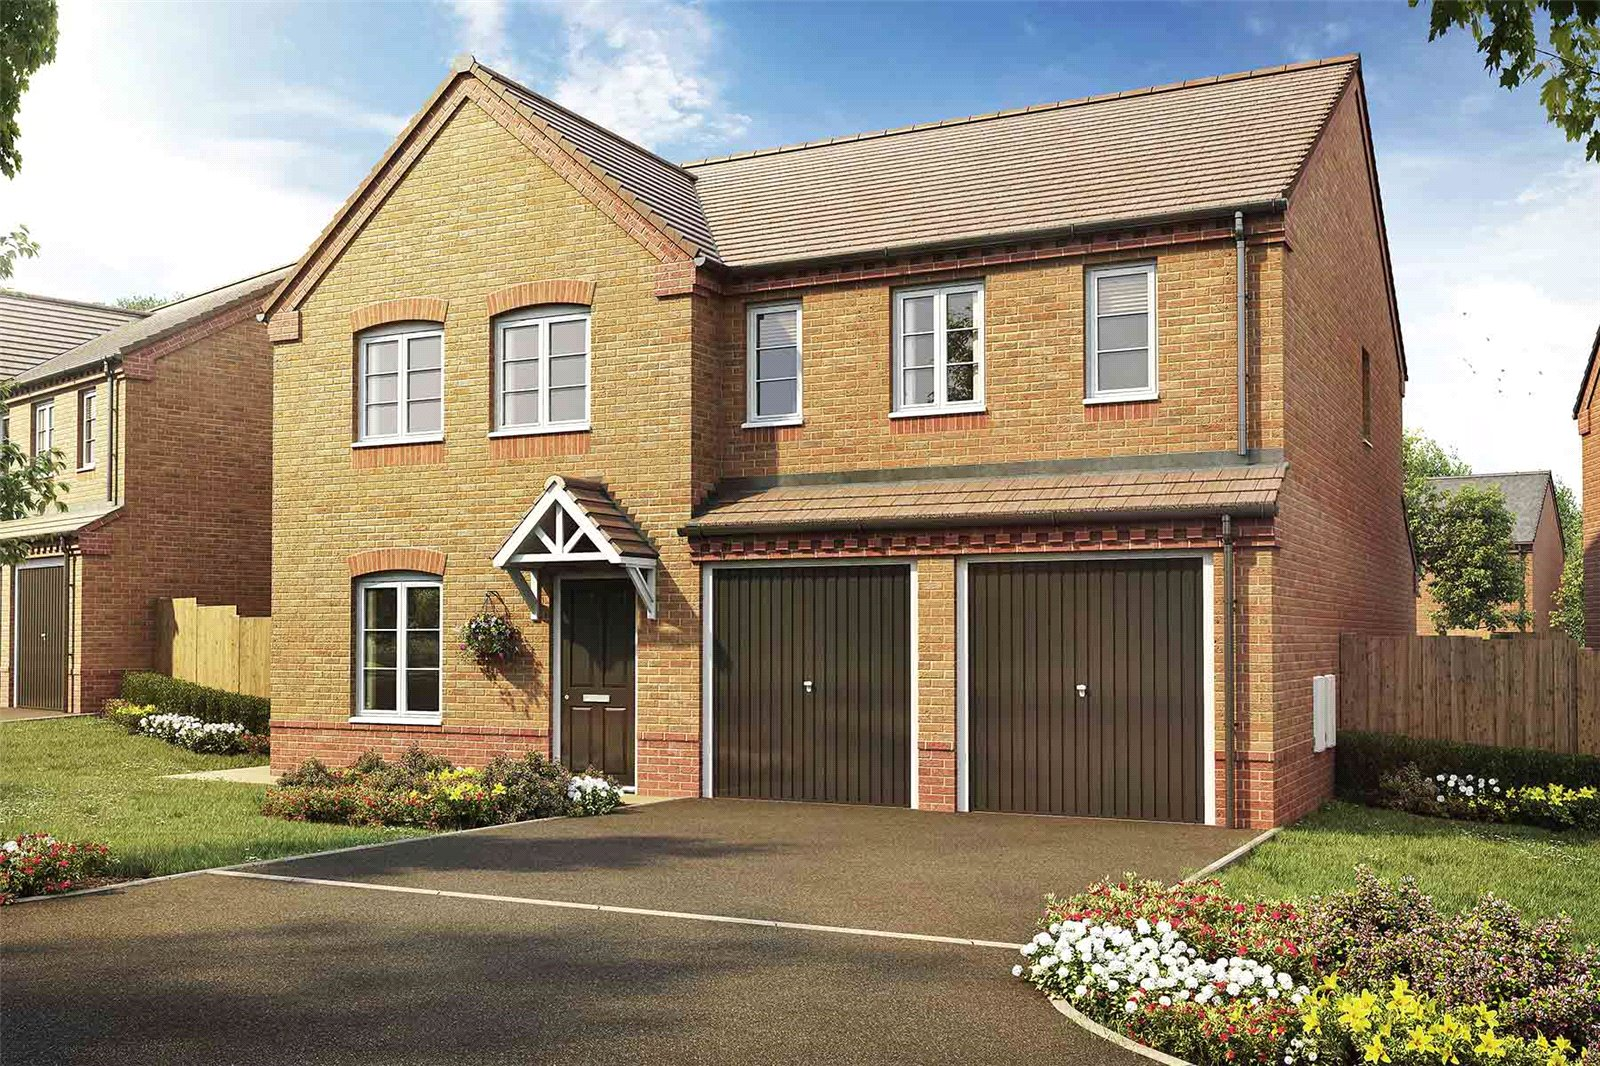 5 Bedrooms Detached House for sale in Powyke View Powick Worcestershire WR2